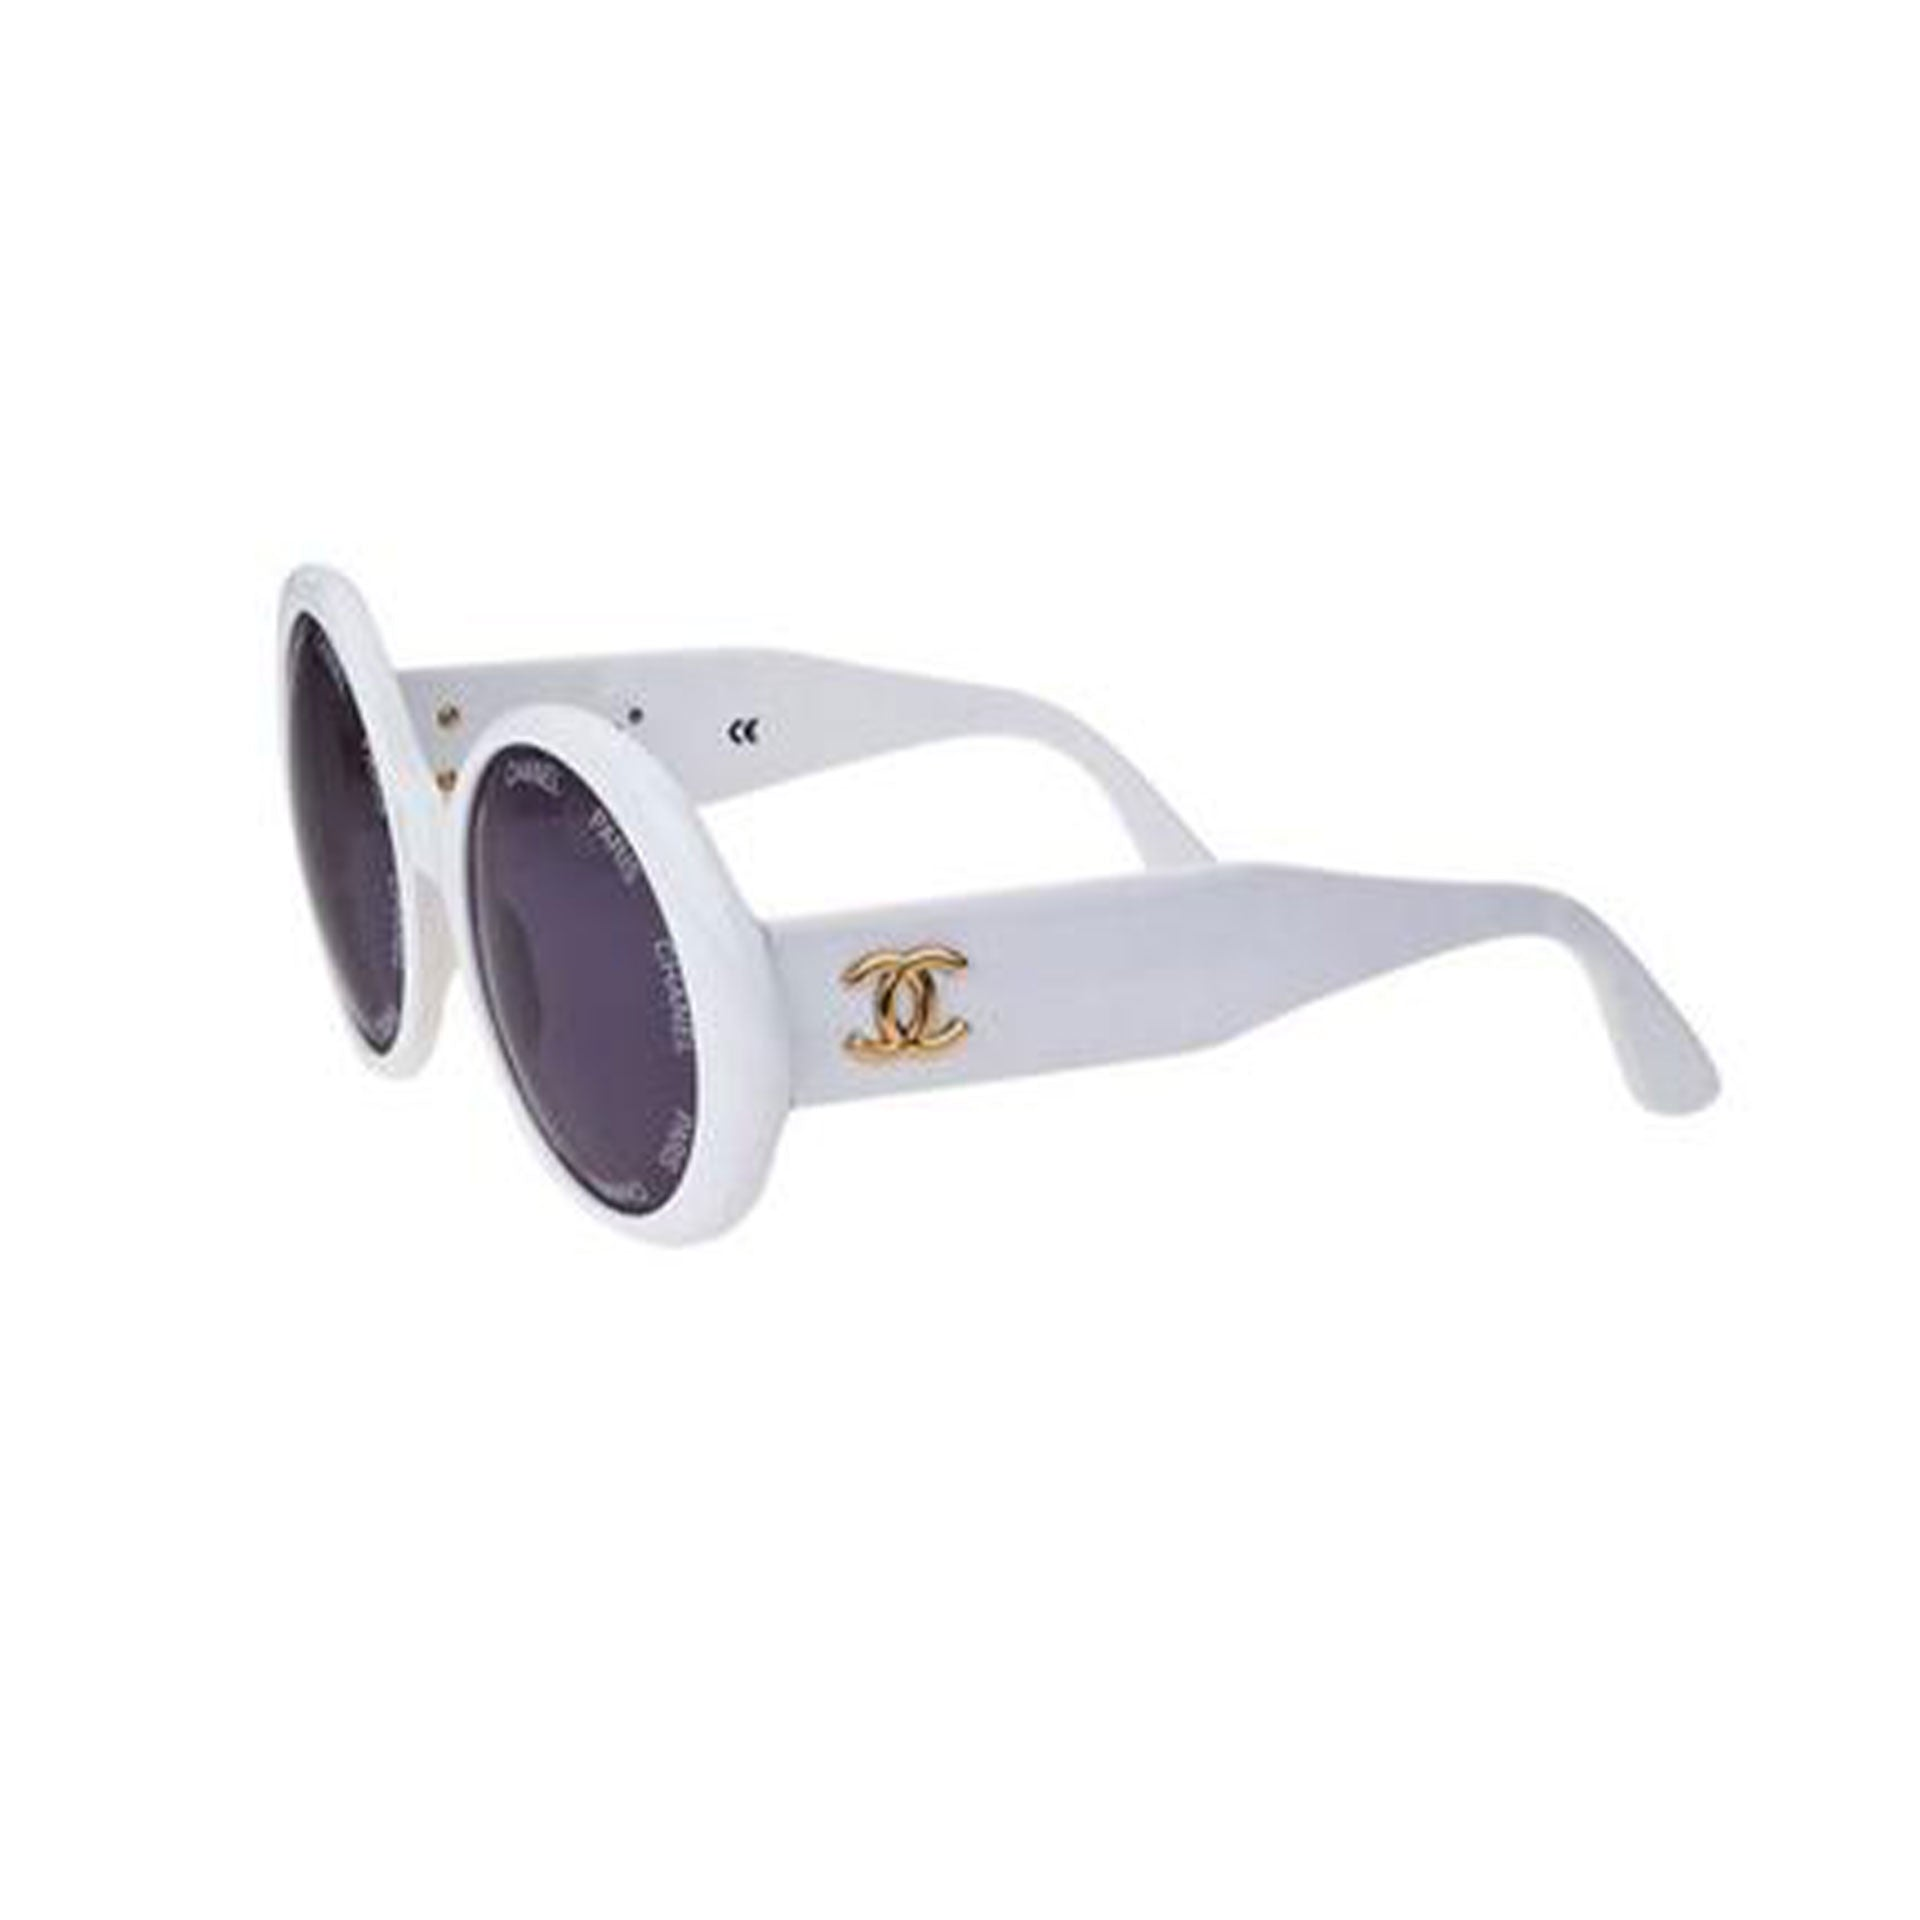 Chanel Rare 1993 Runway Vintage White Sunglasses